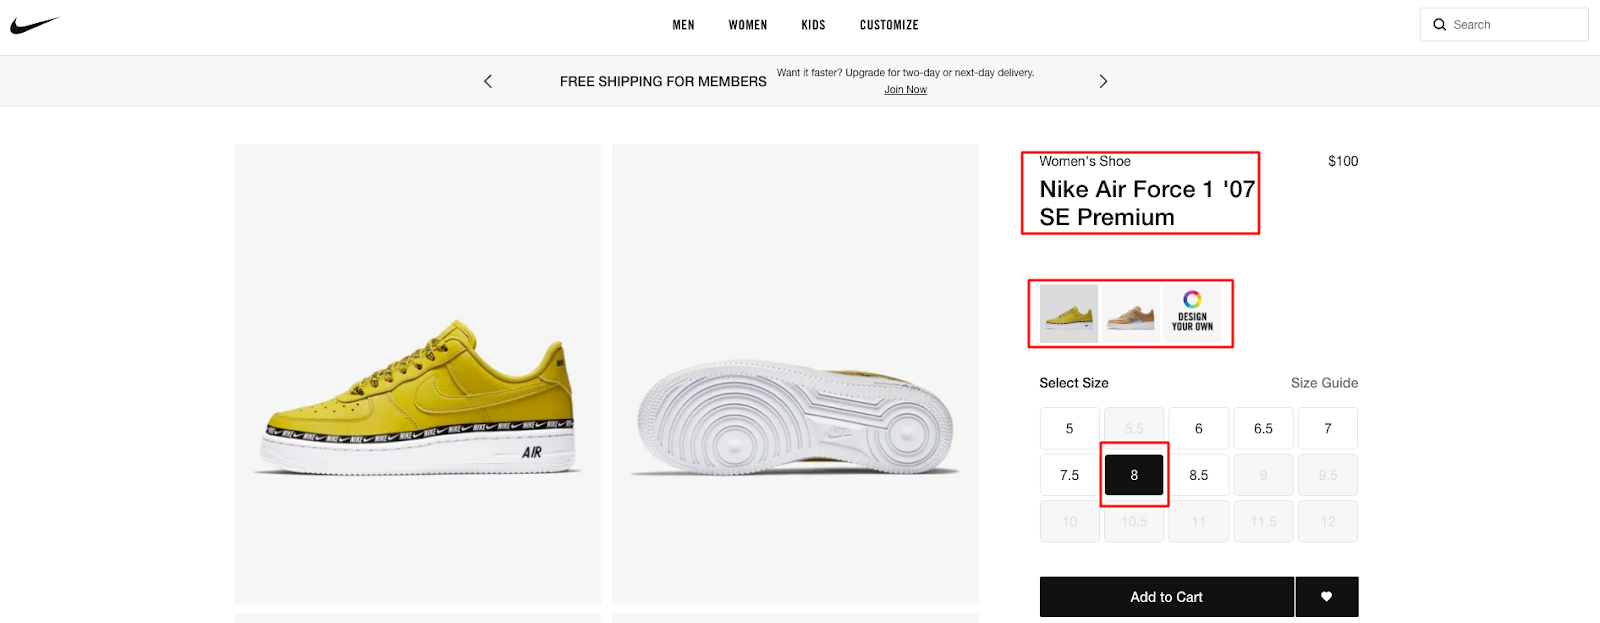 Nike Product Options Before the Checkout